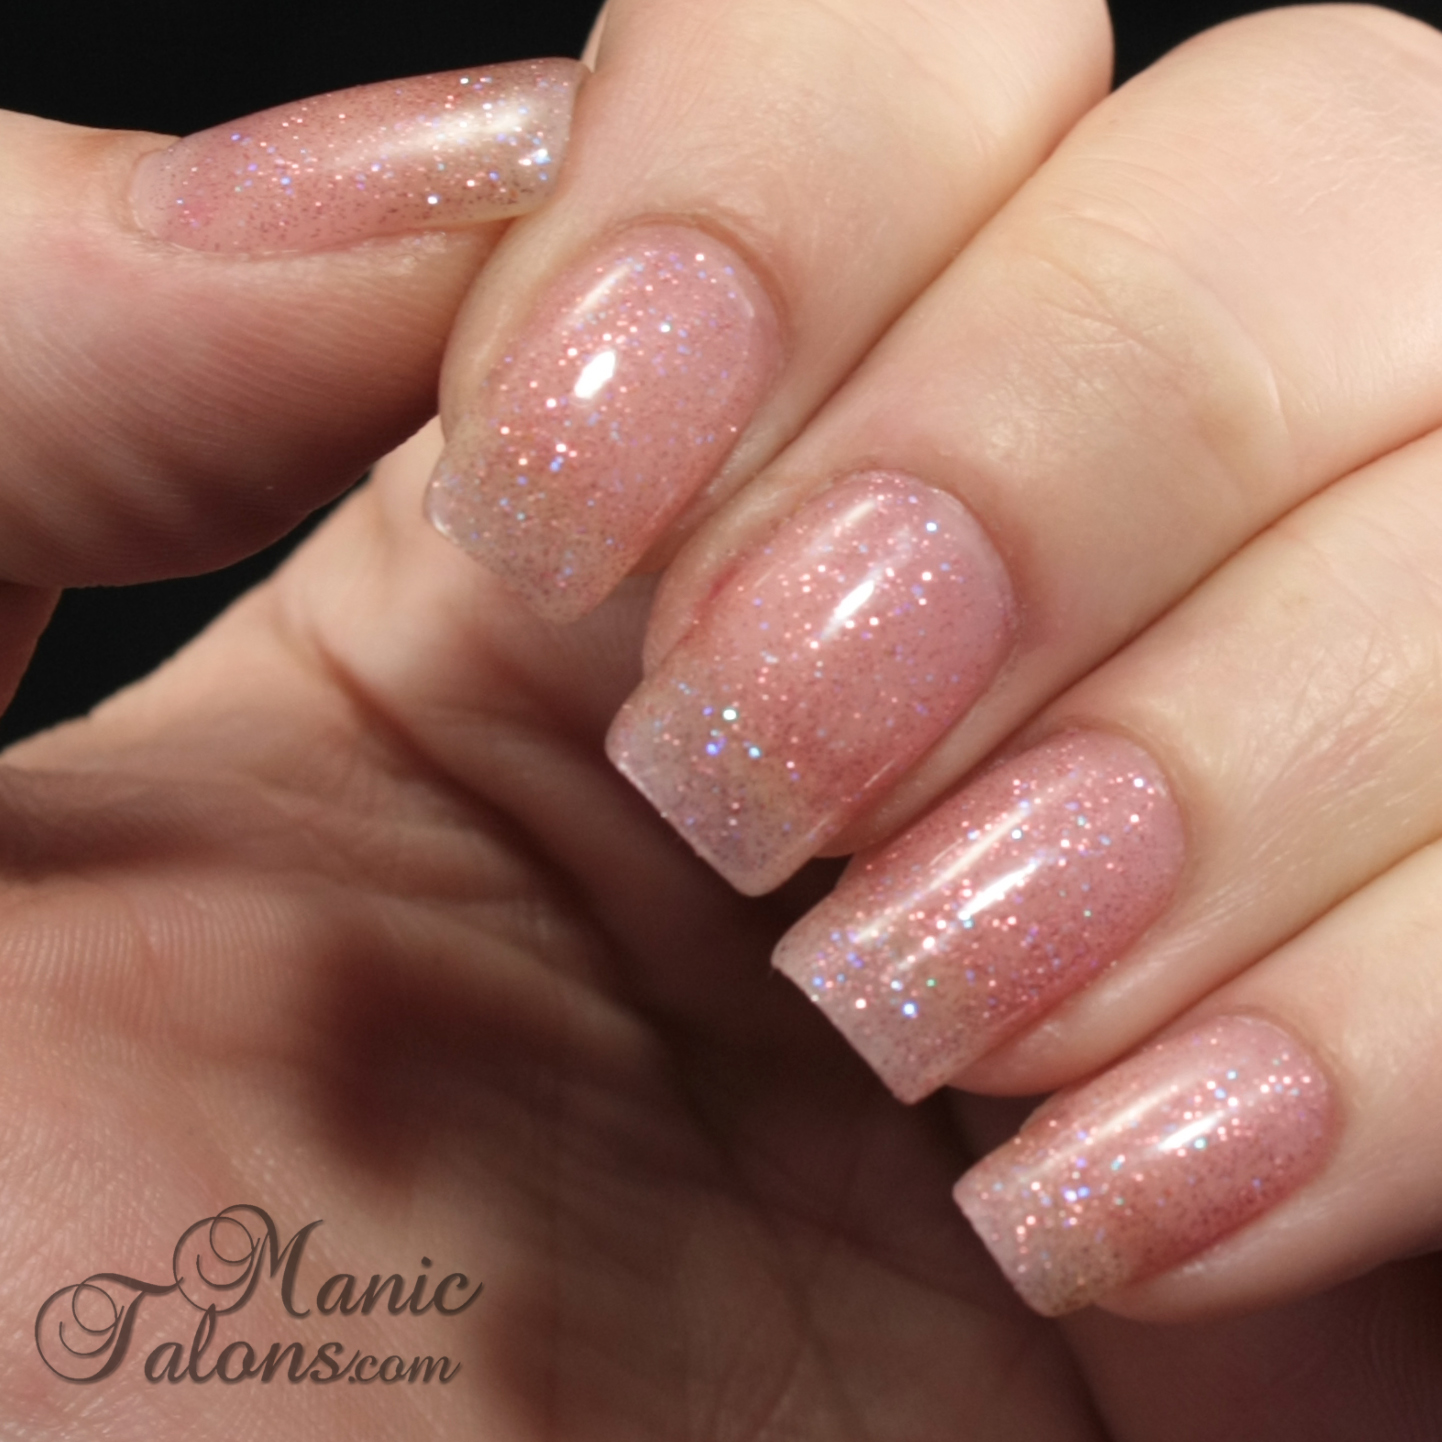 Daisy DUO Soak Off Gel Polish Forgotten Pink Swatch